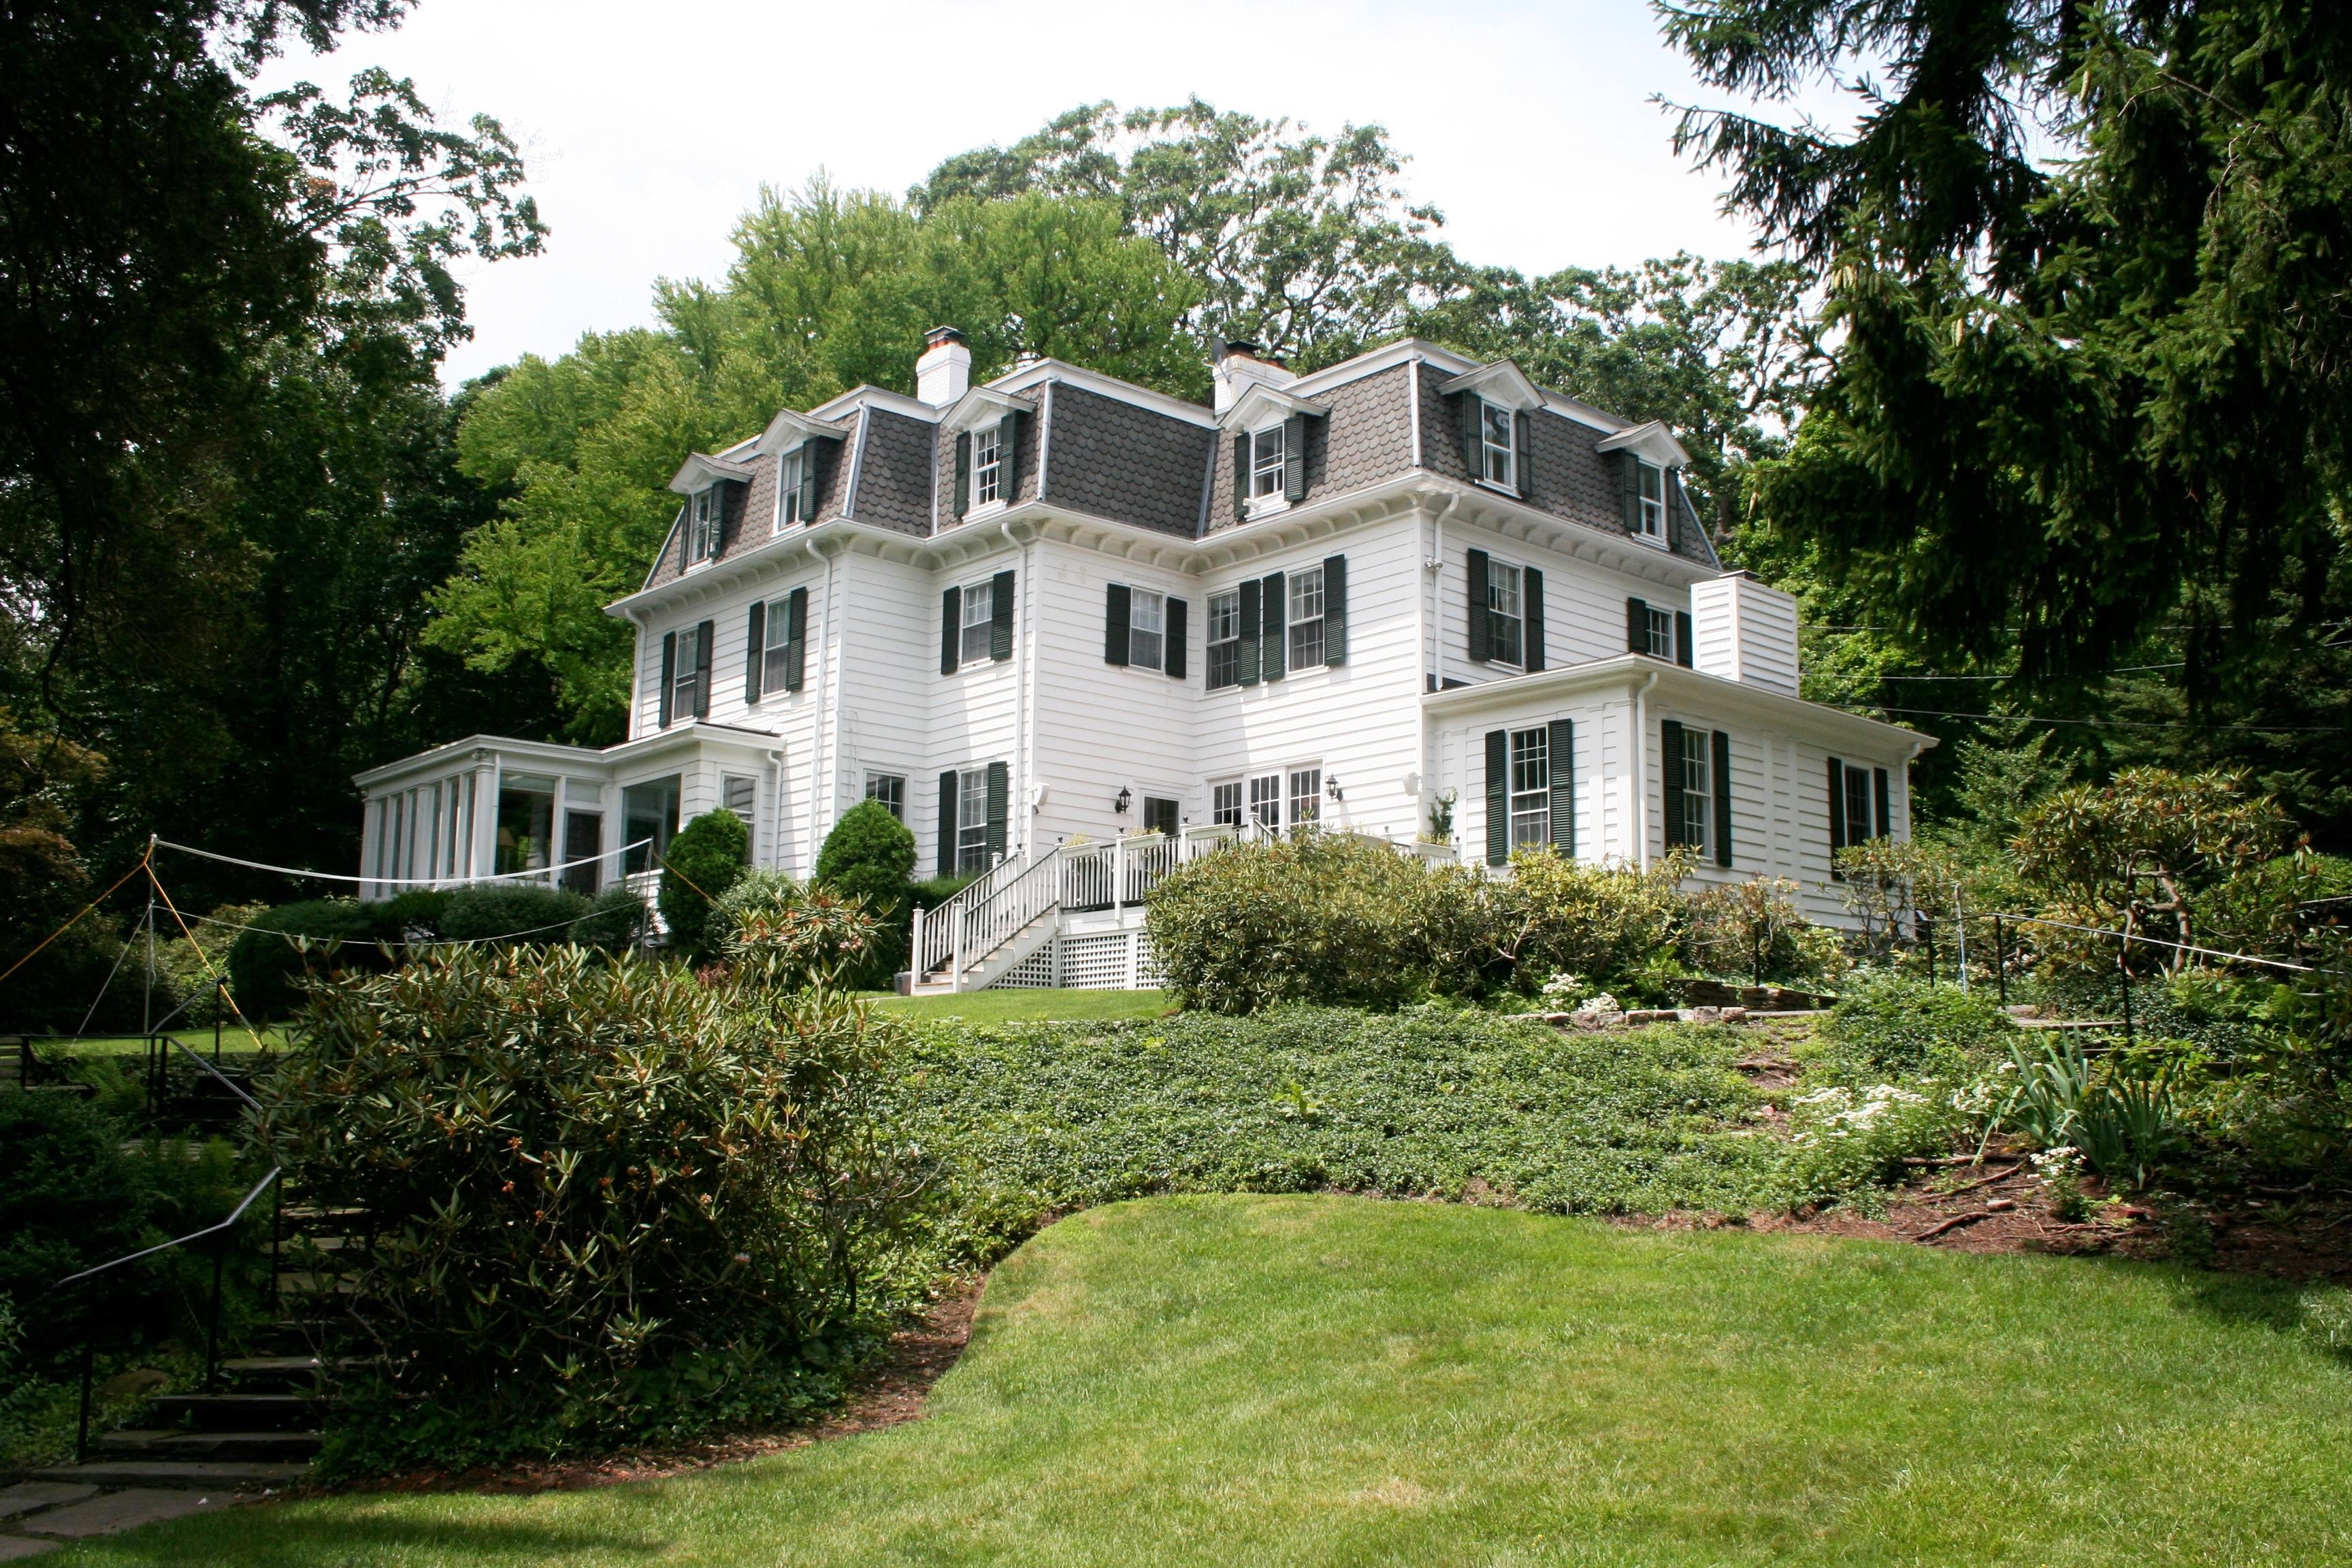 Casa Unifamiliar por un Venta en Llewellyn Park Colonial 11 Park Way West Orange, Nueva Jersey 07052 Estados Unidos